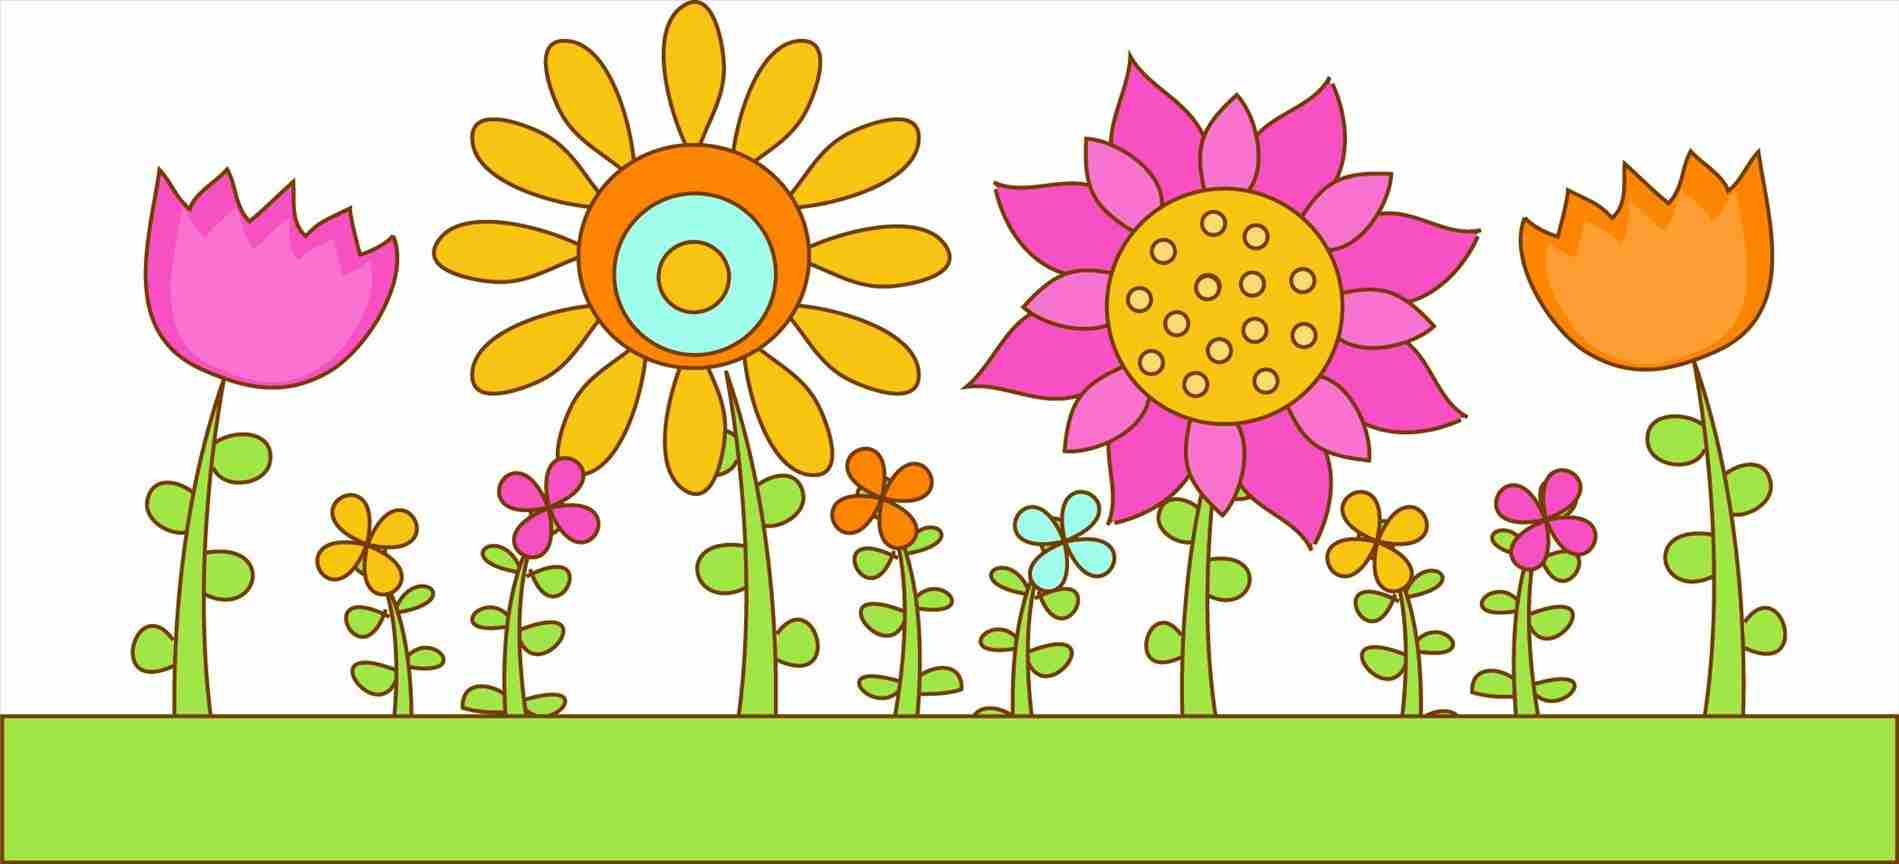 Free Garden Clipart, Download Free Clip Art, Free Clip Art on.